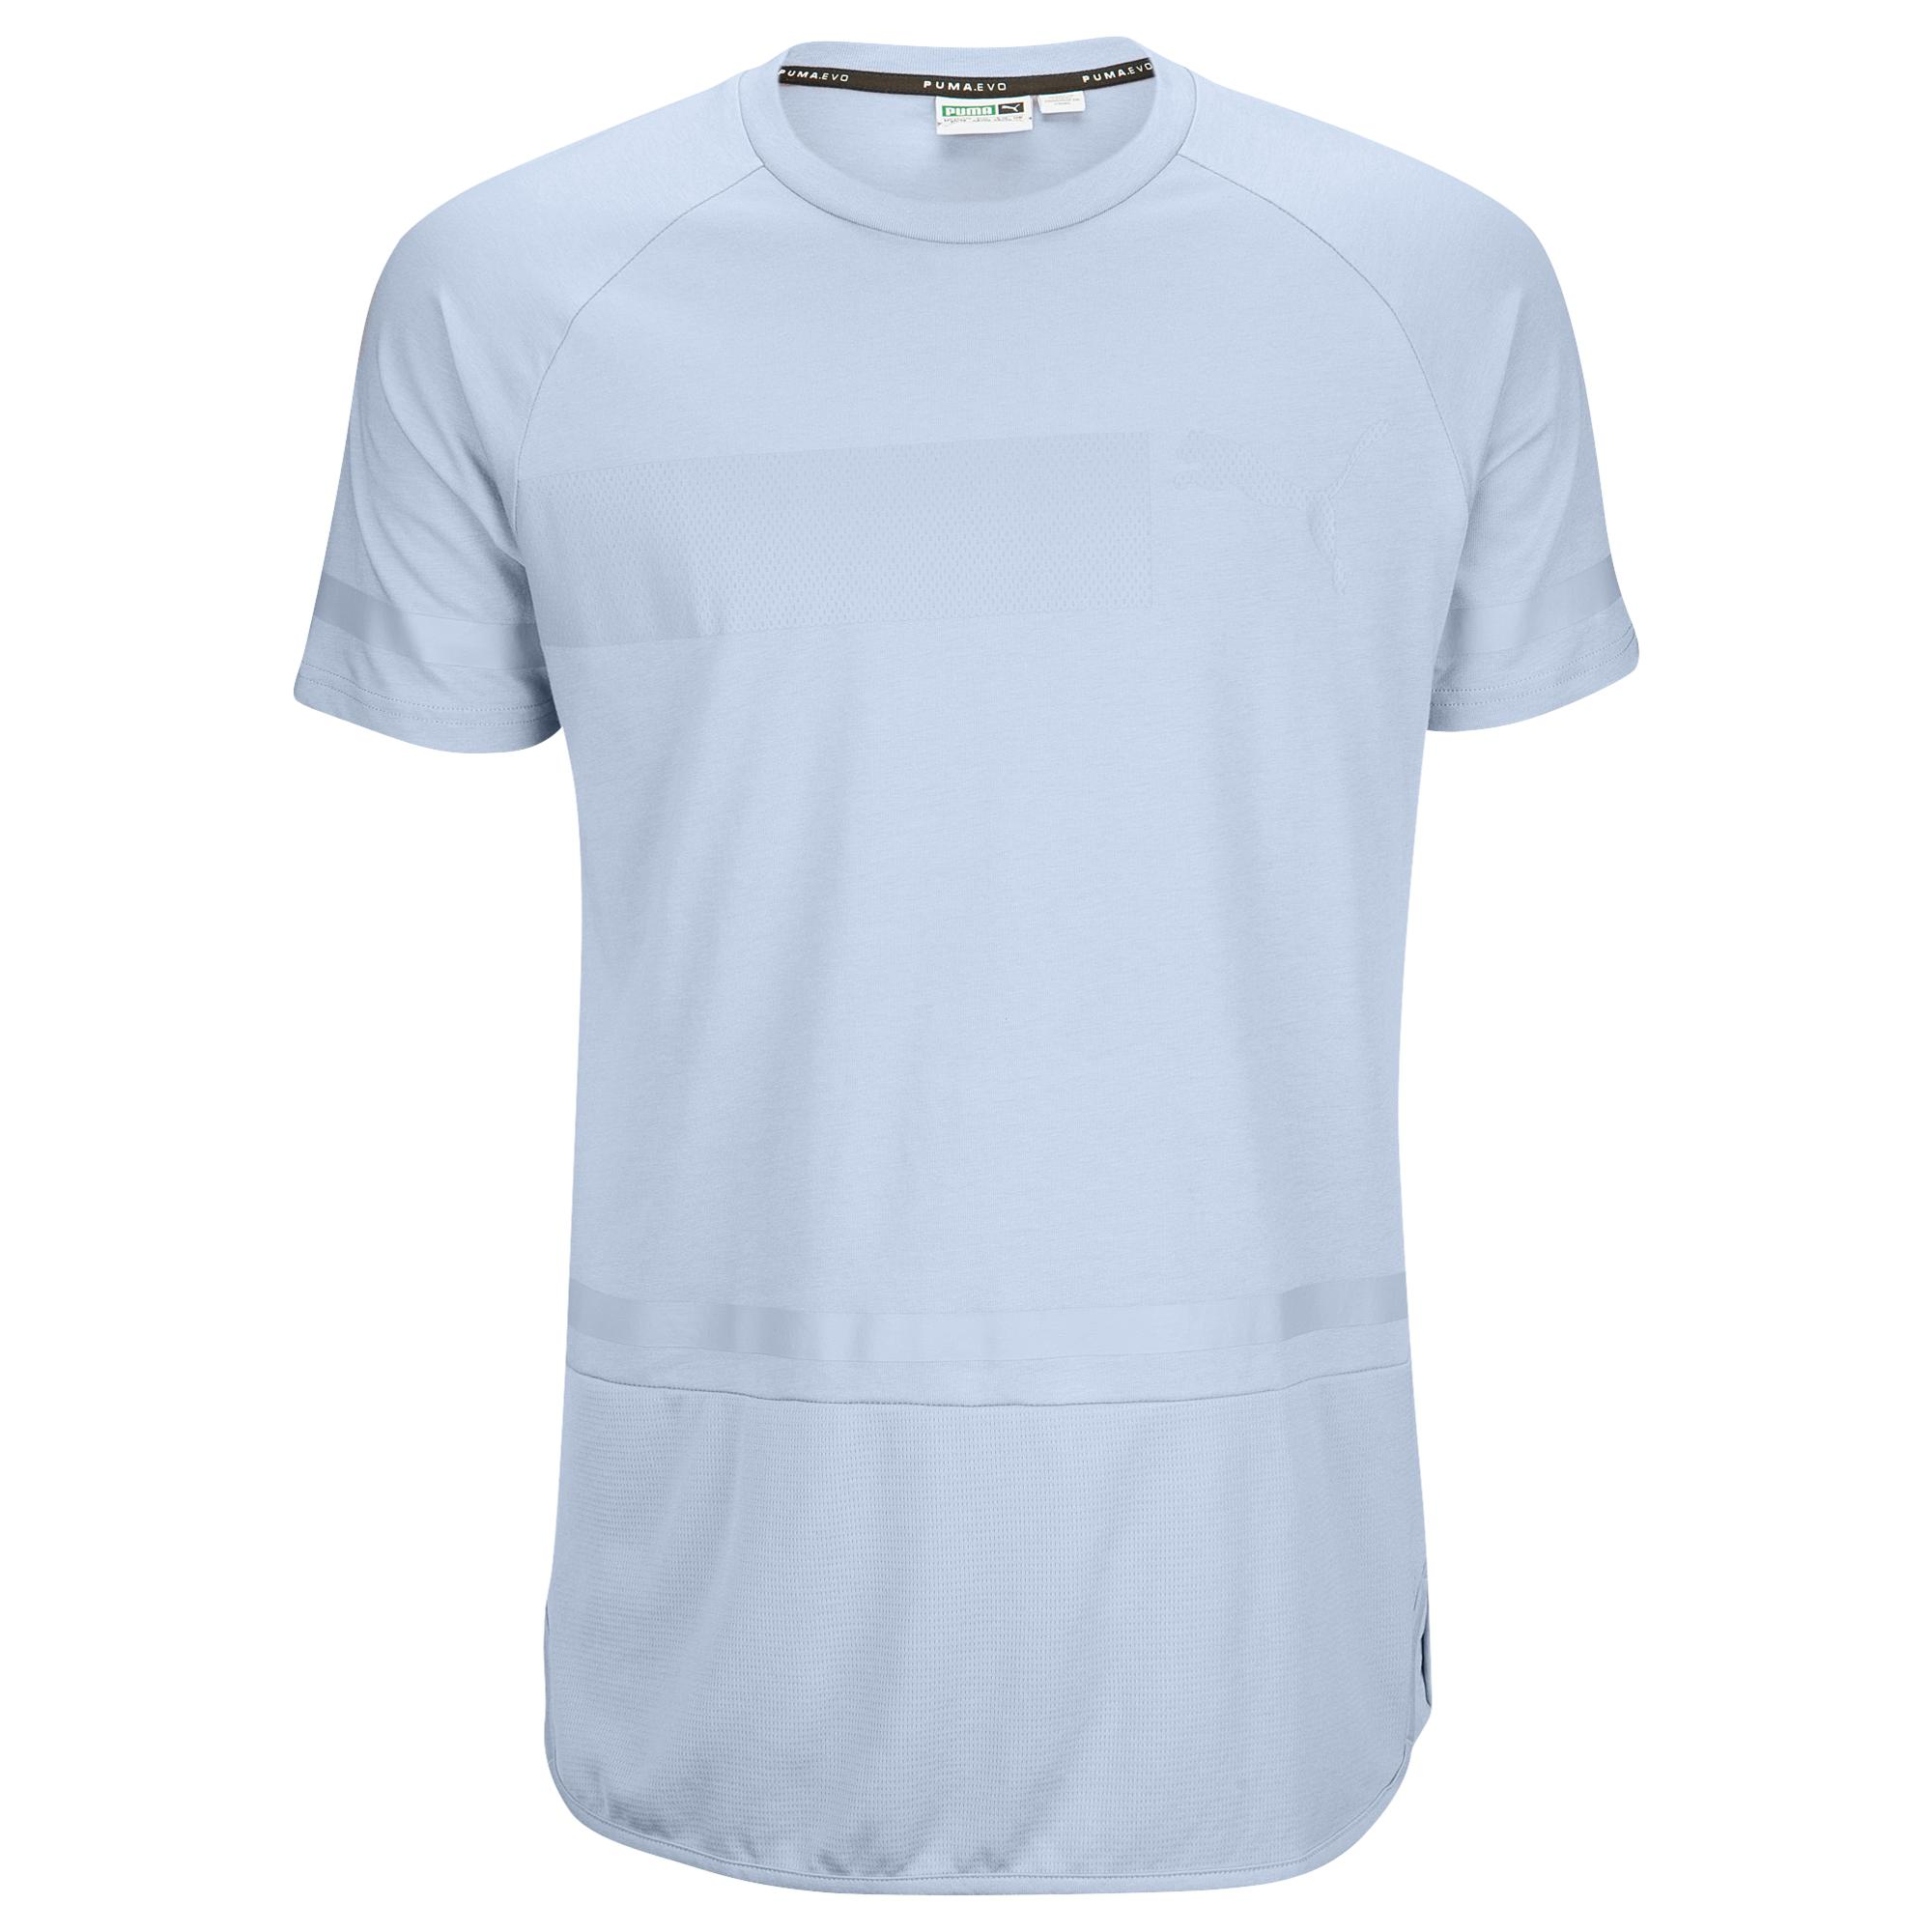 bfa9f489ade PUMA Recharge Short Sleeve T-shirt in Blue for Men - Lyst